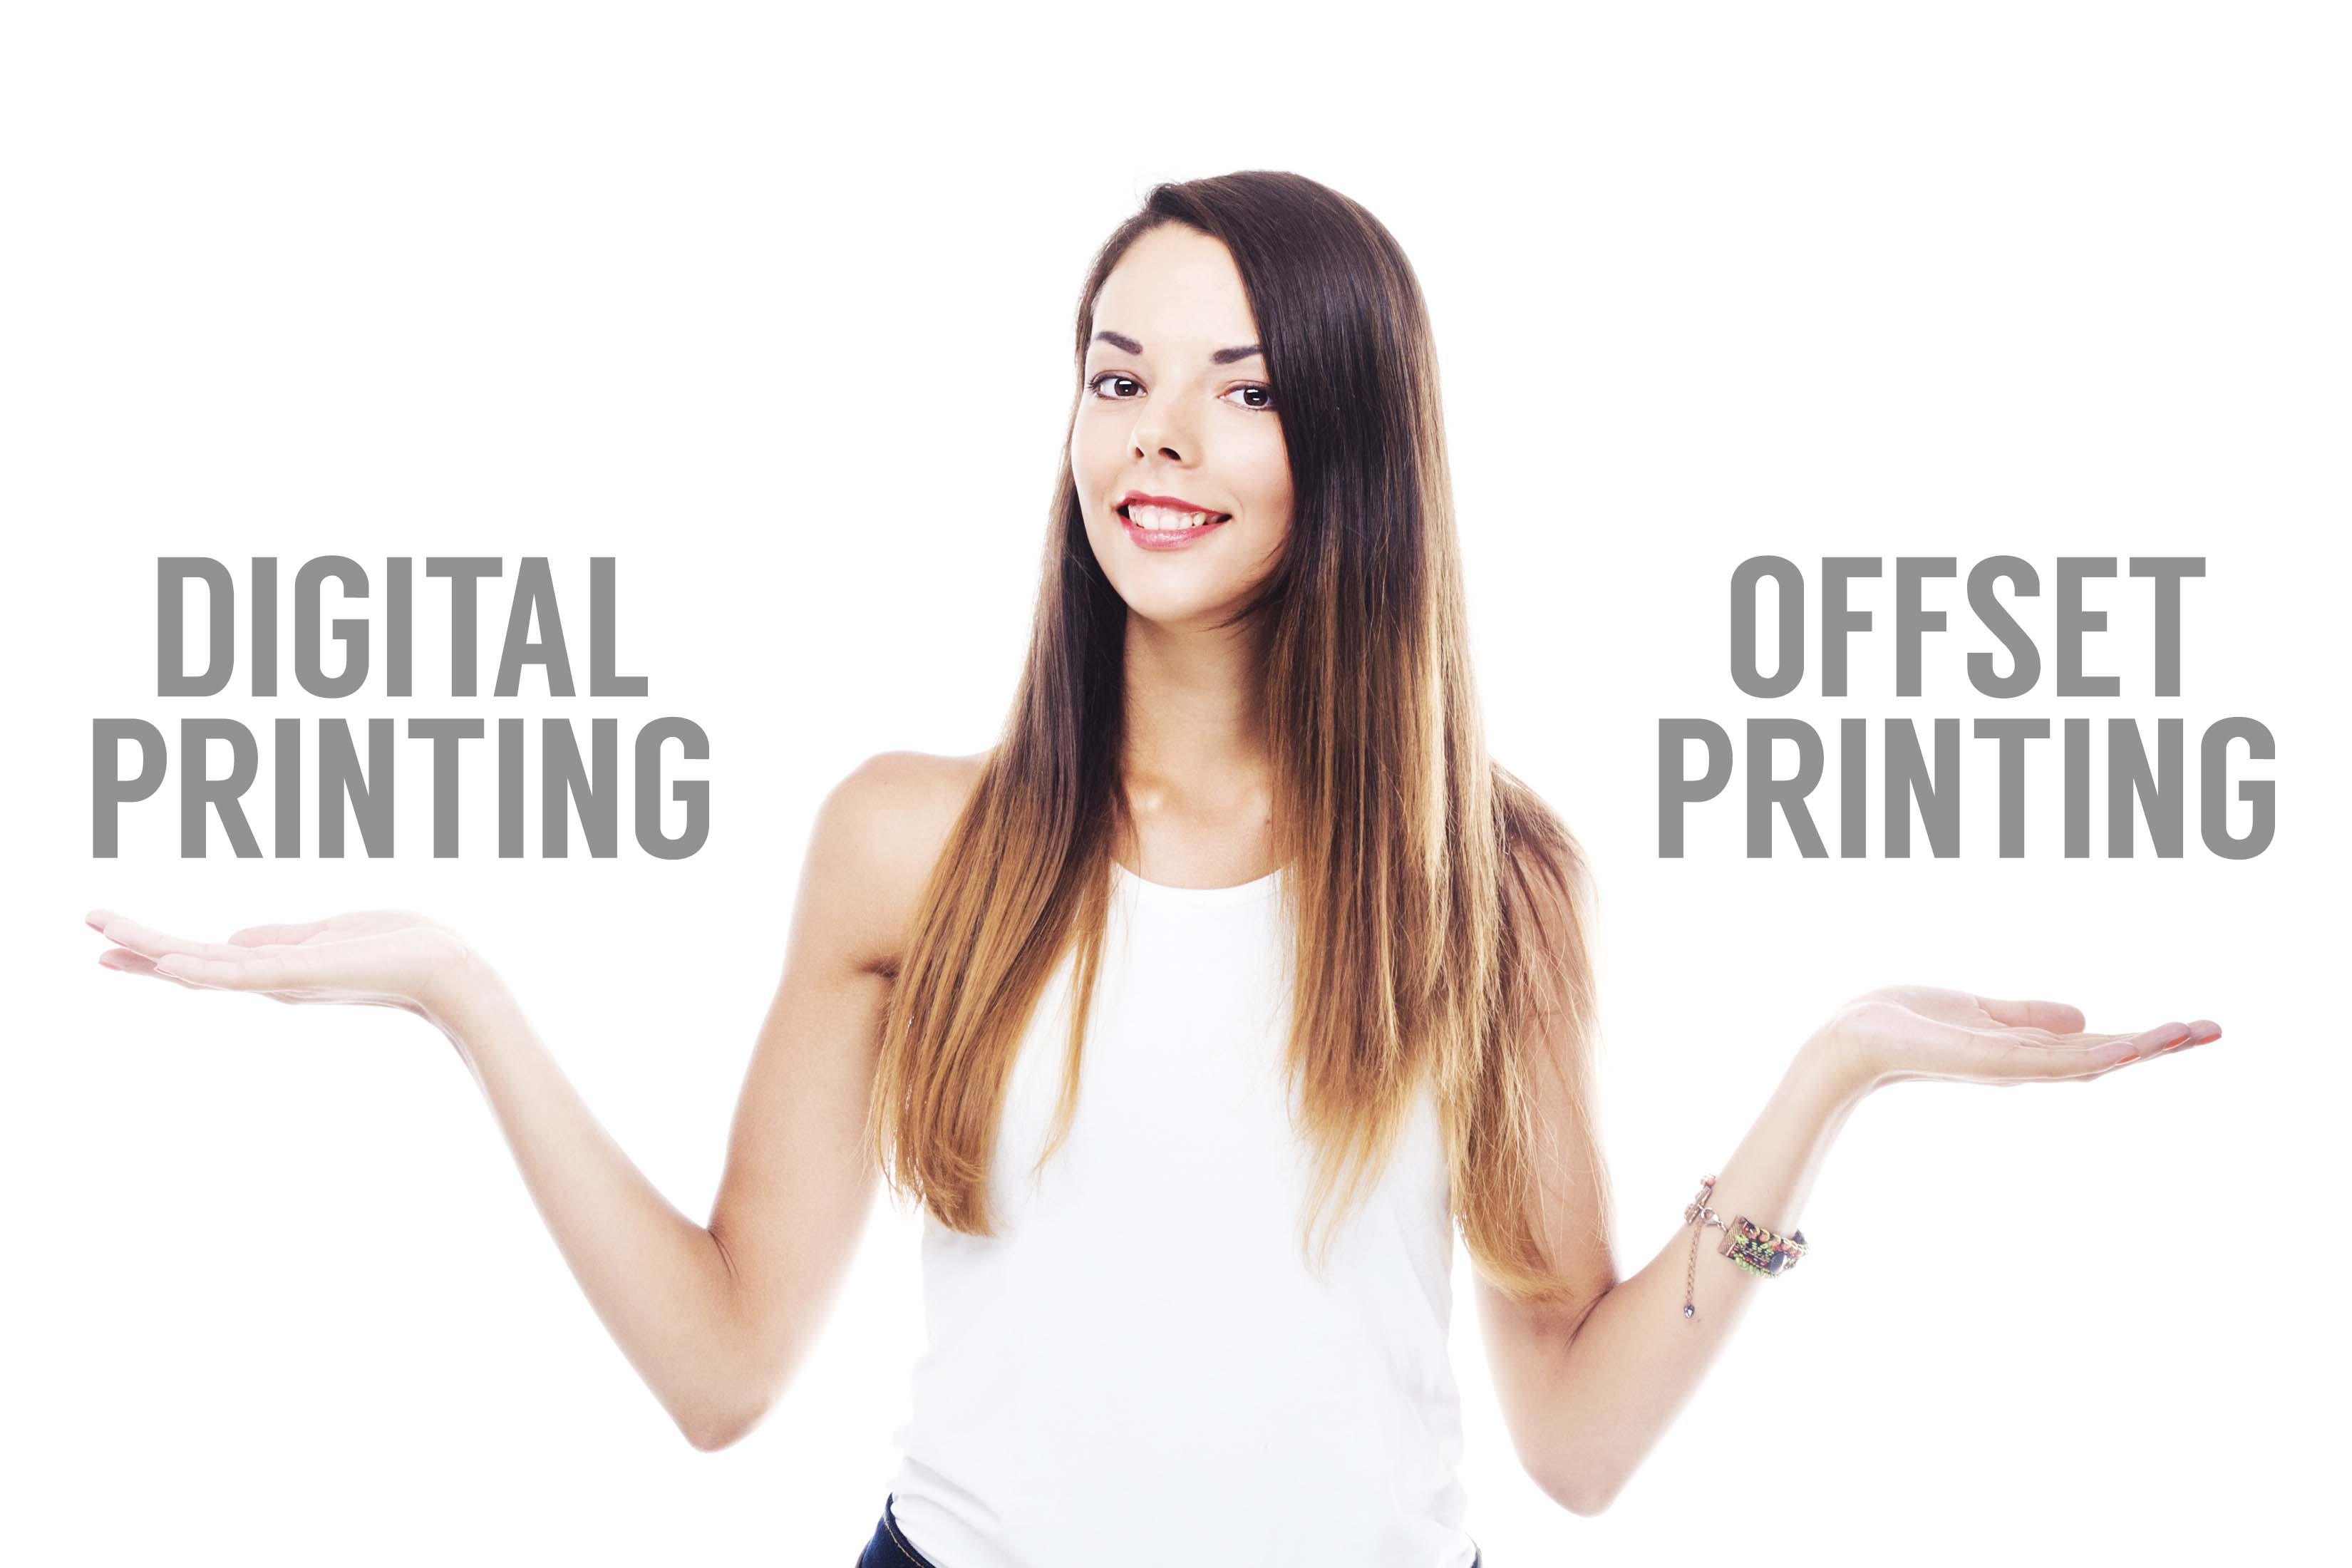 Digital or offset printing services